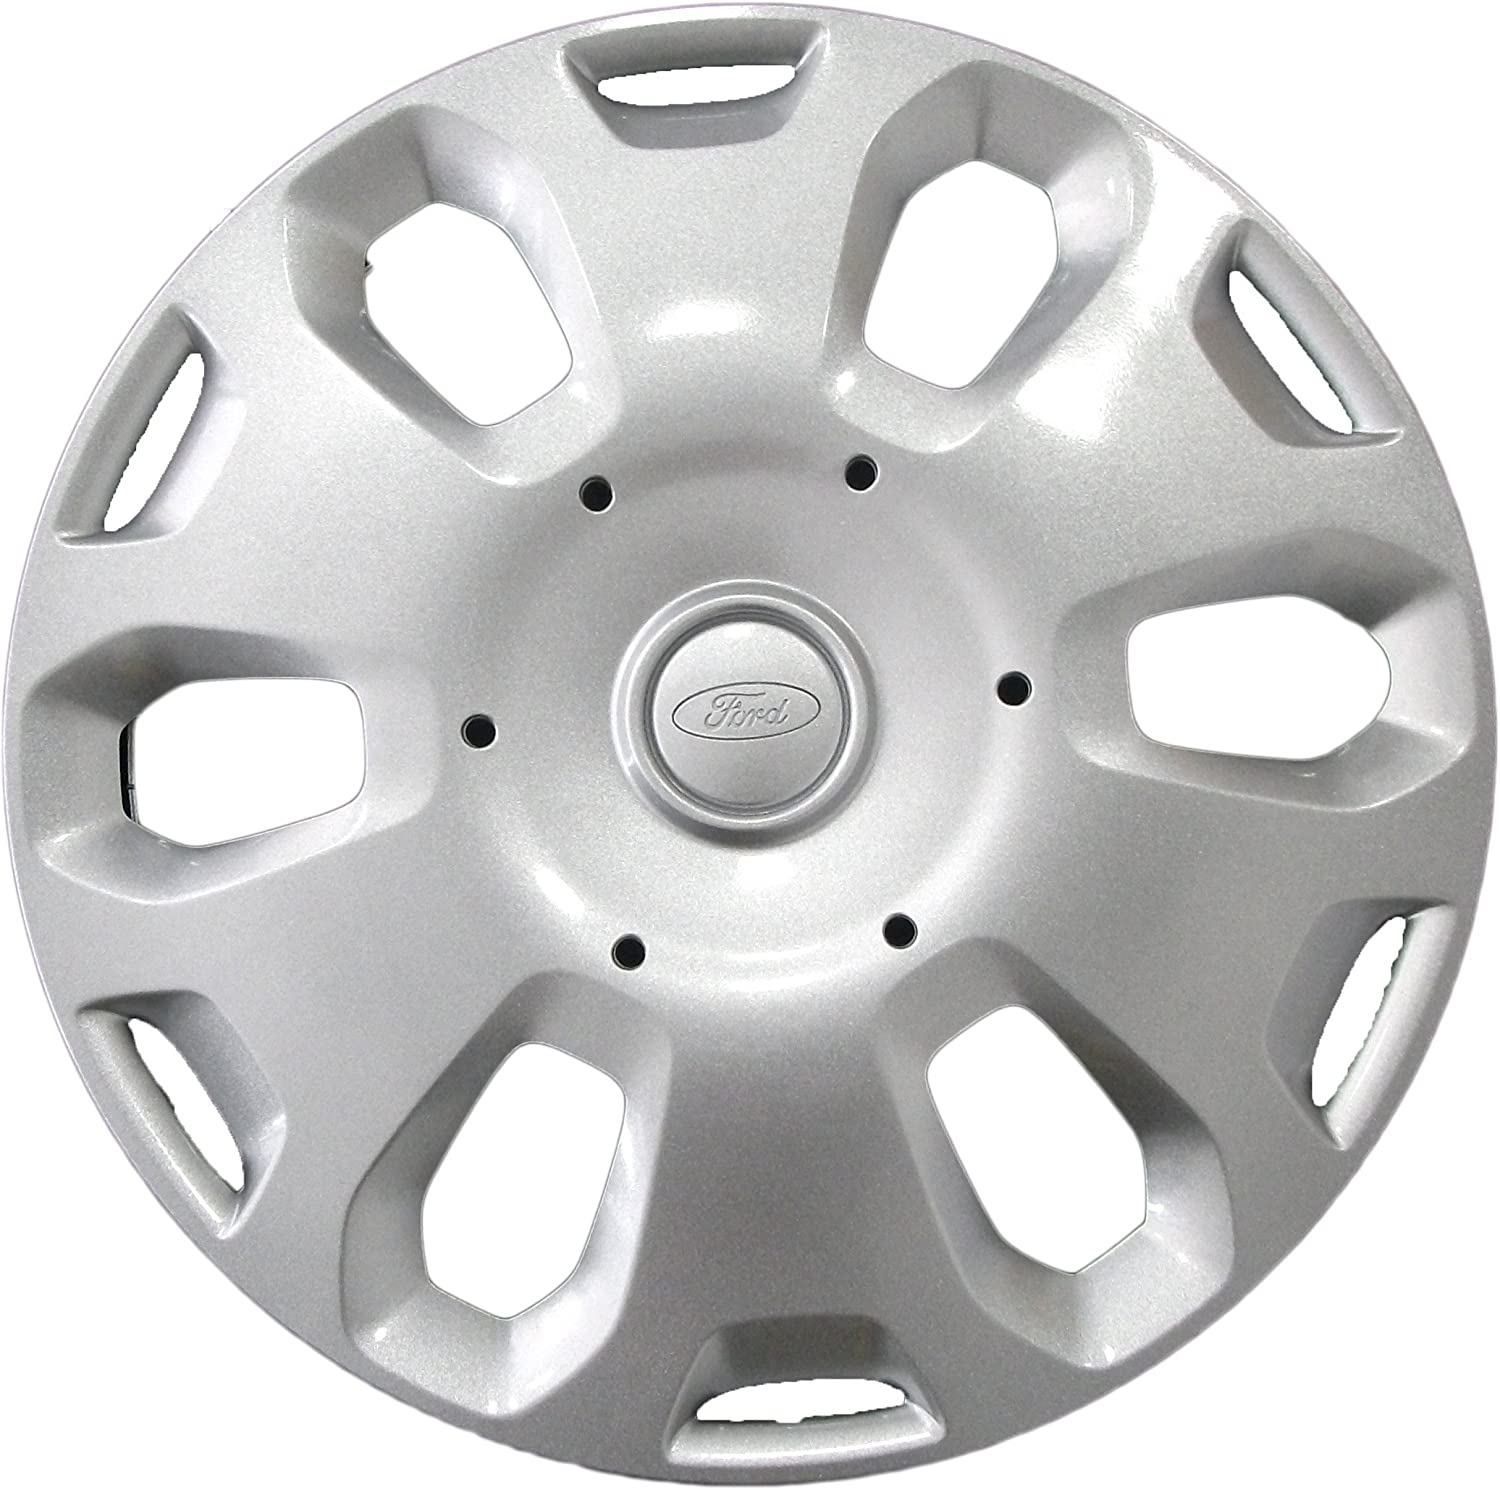 silver//white Ford Ka 14-inch Single Wheel Trim for 2008 Onwards,1558649